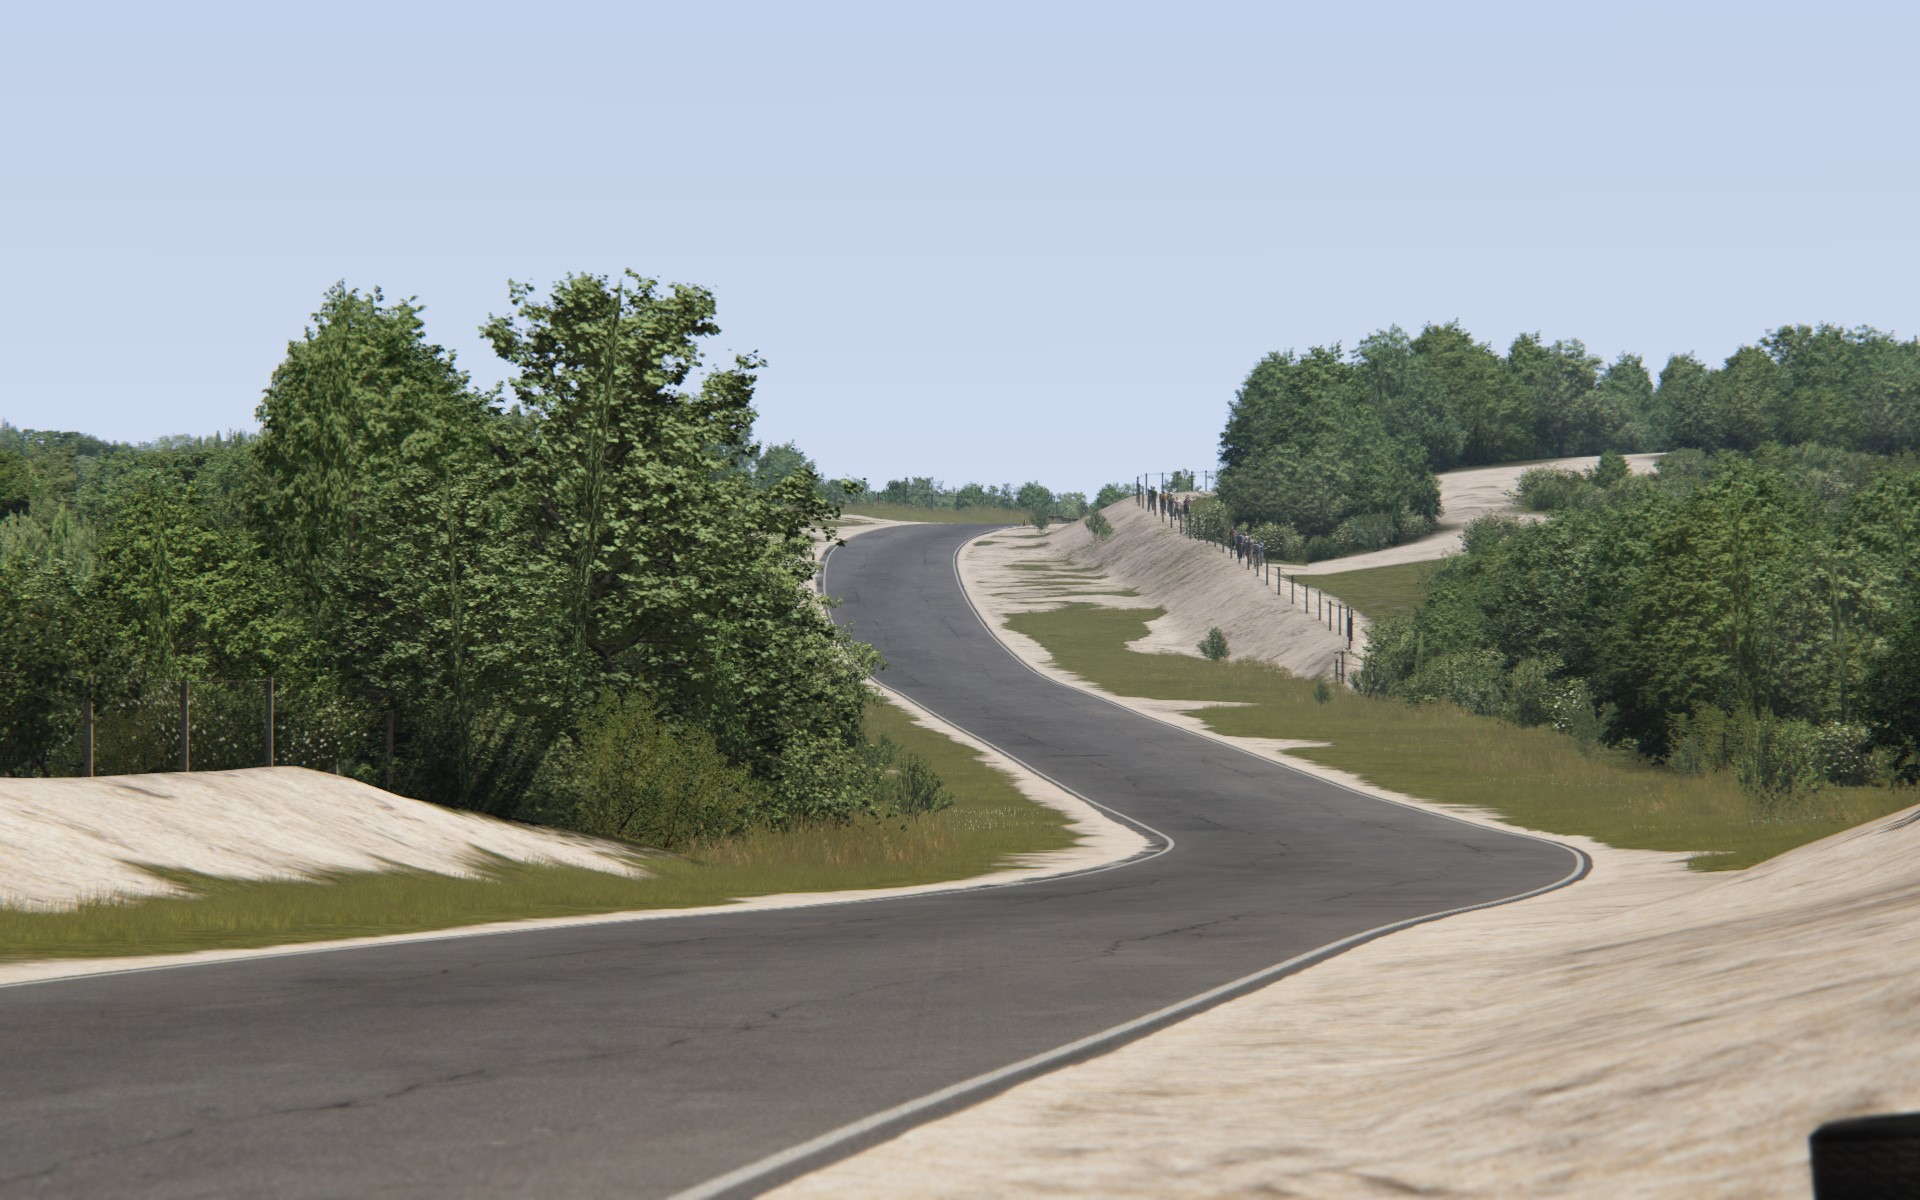 Calabogie Race Track >> Bridgehampton Race Circuit | RaceDepartment